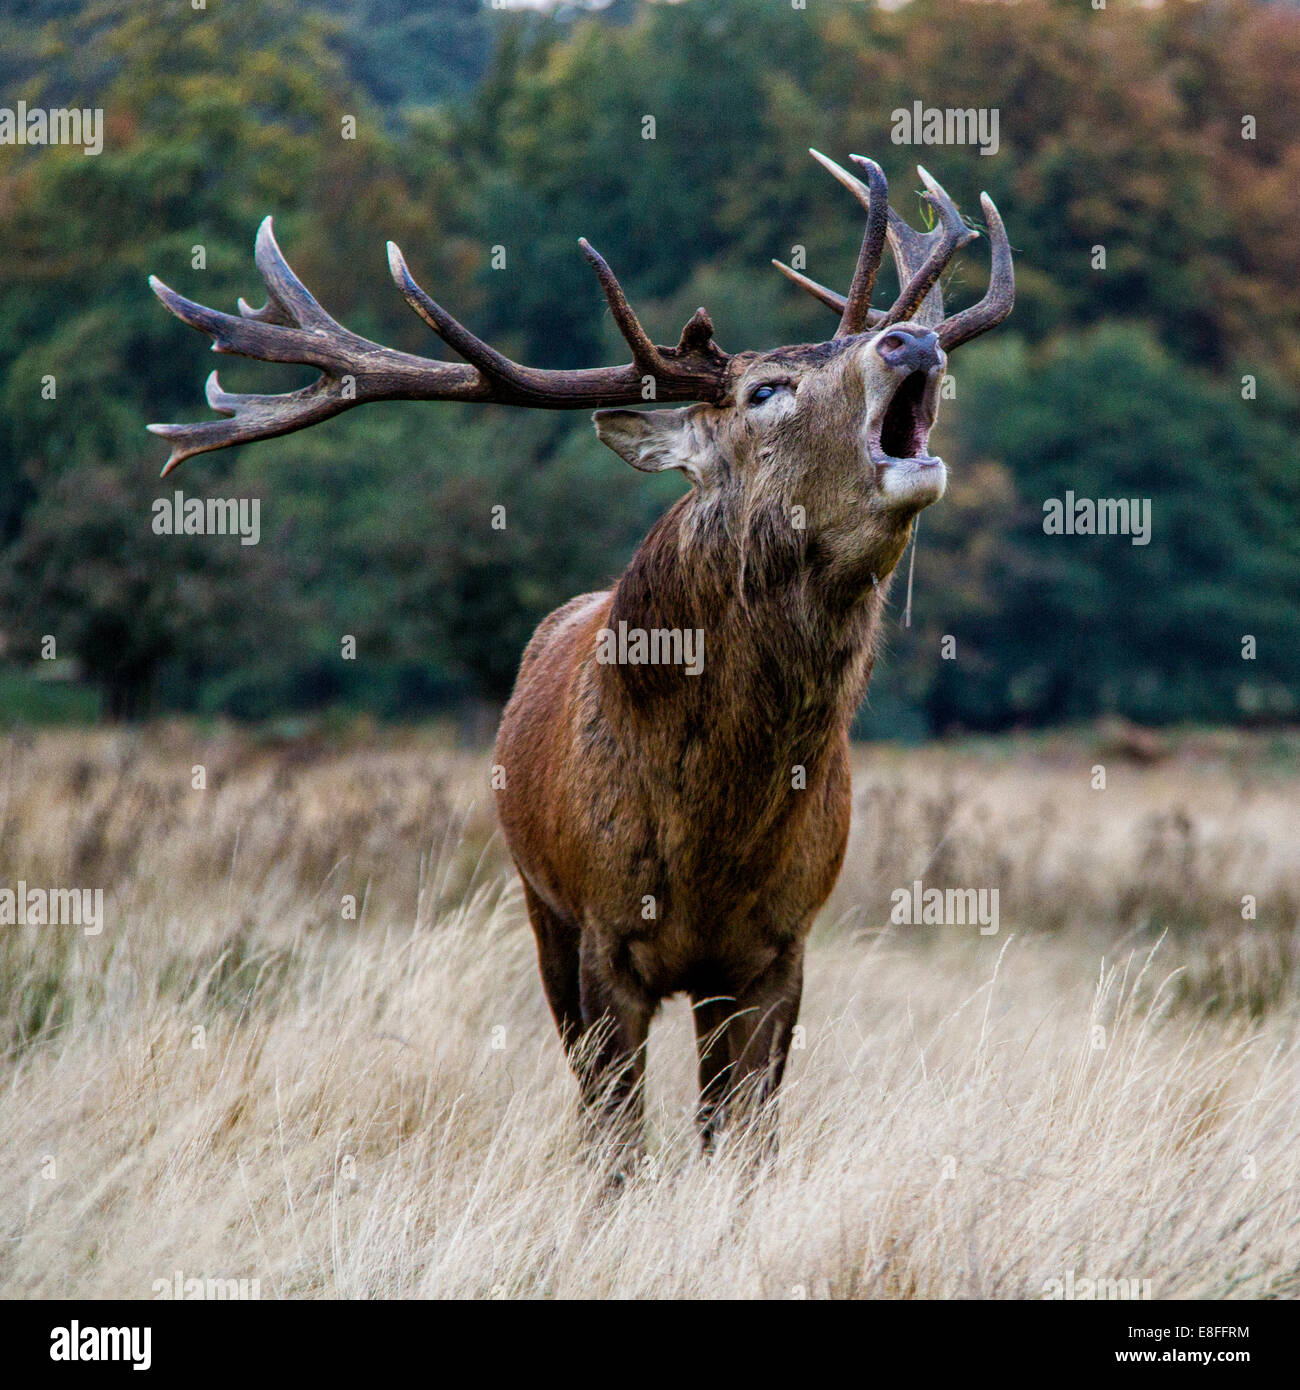 Stag bleating, Windsor Great Park, Berkshire, England, UK - Stock Image